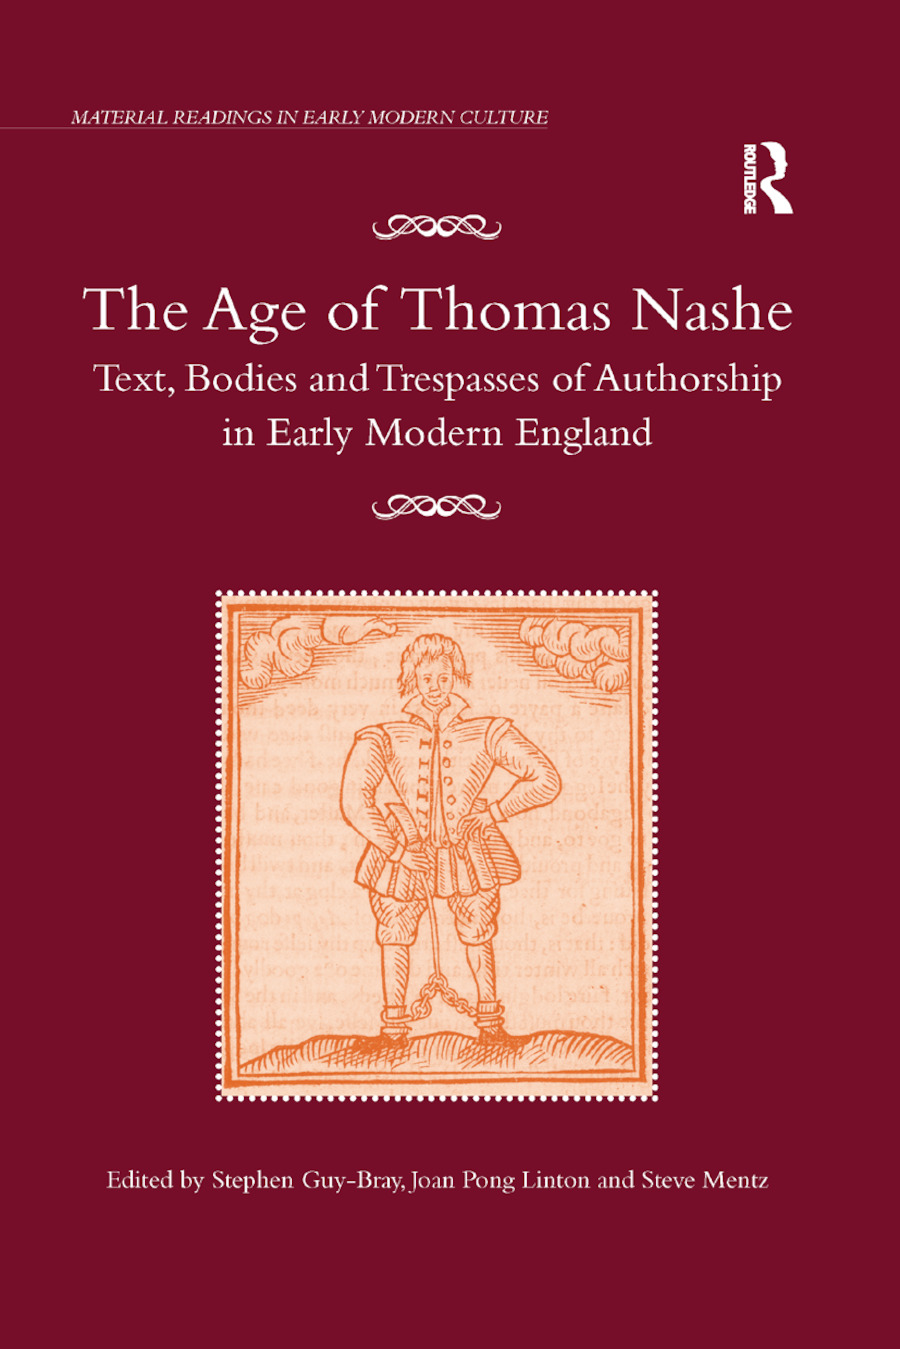 The Age of Thomas Nashe